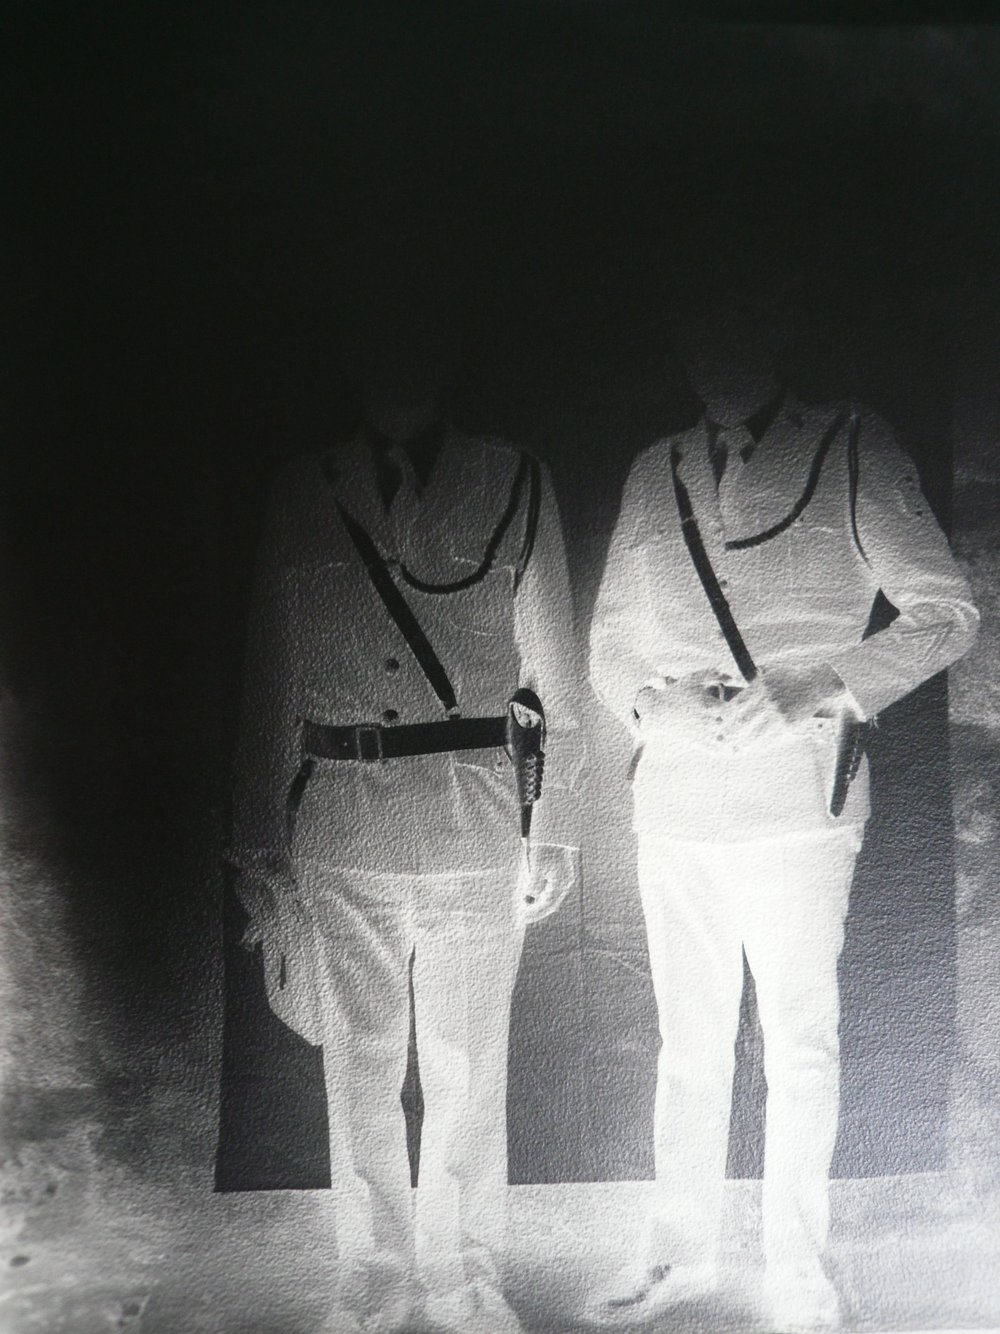 Image © Milagros de la Torre.   Under the Black Sun (Policemen)  , 1991-1993. Archival pigment print on cotton paper, mounted on aluminum. 80 x 60 in.